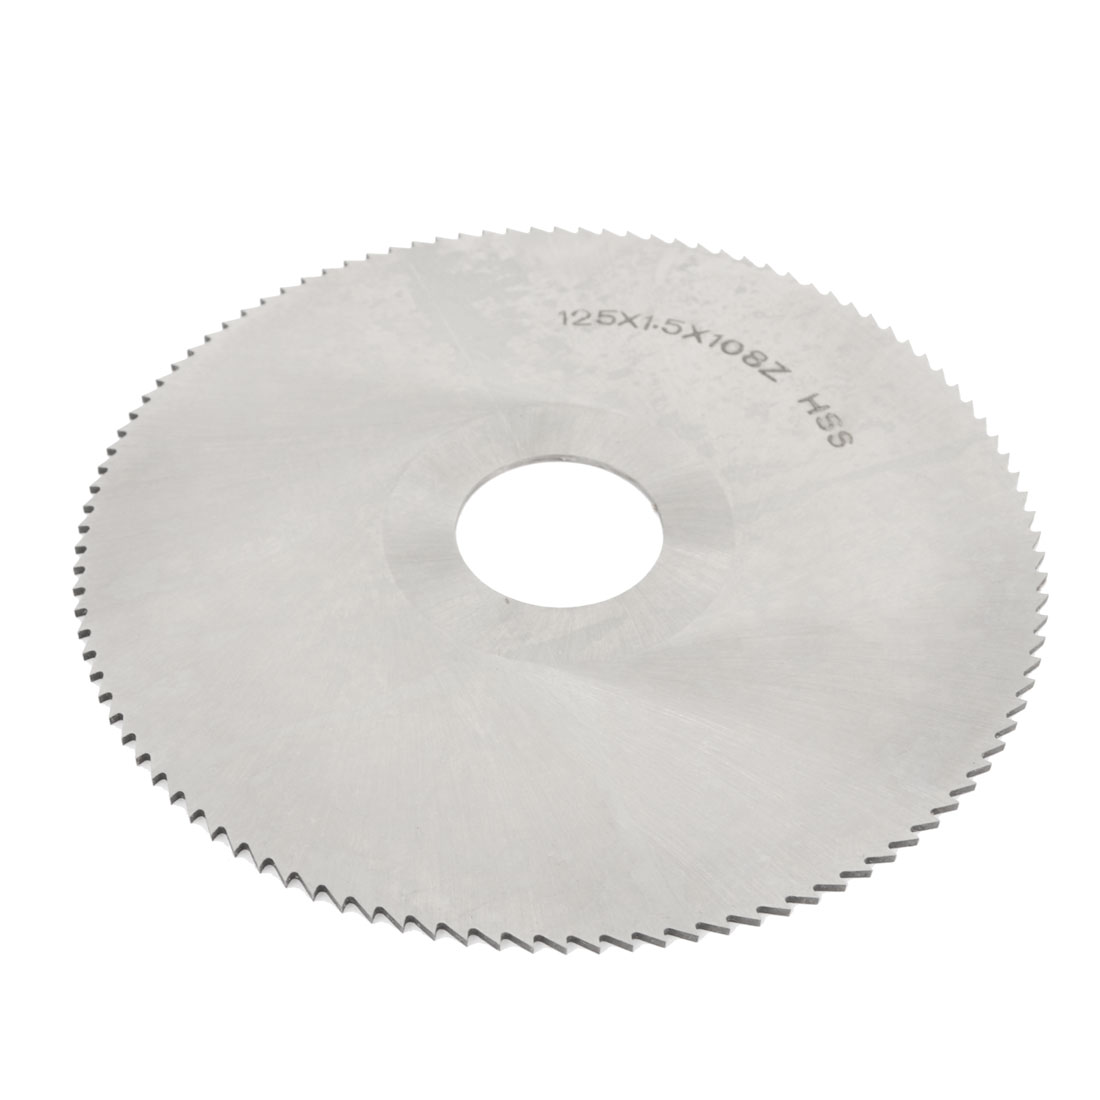 HSS High Speed Steel 125MM Diameter 1.5MM Thk 27MM Arbor 108T Circle Milling Disc Cutting Wheel Slitting Saw Cutter Hand Tool